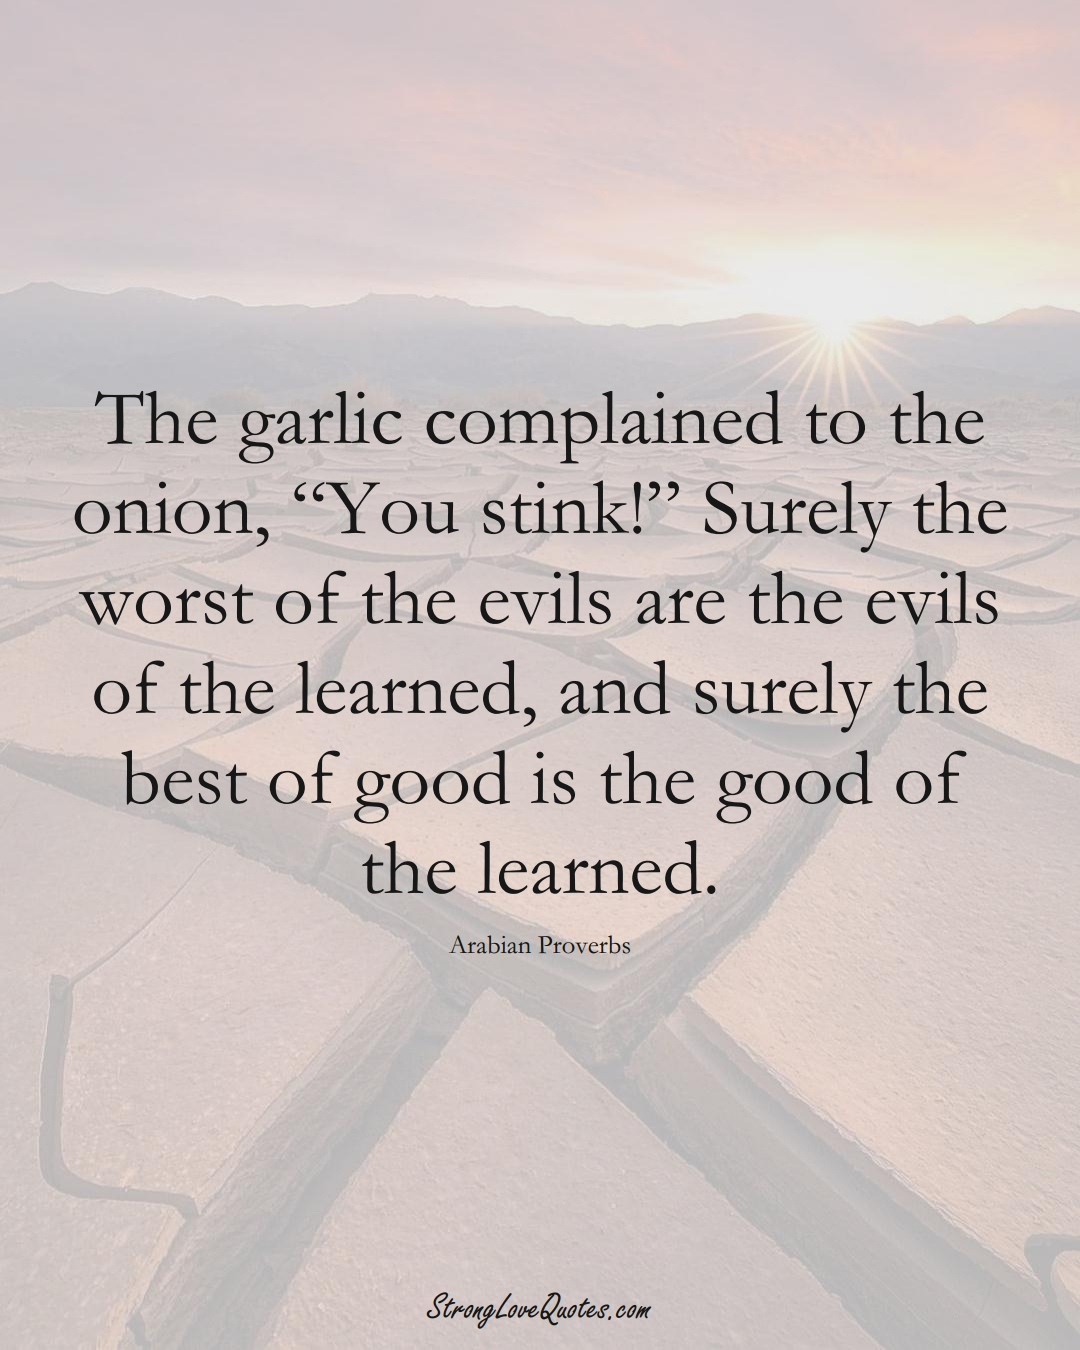 """The garlic complained to the onion, """"You stink!"""" Surely the worst of the evils are the evils of the learned, and surely the best of good is the good of the learned. (Arabian Sayings);  #aVarietyofCulturesSayings"""